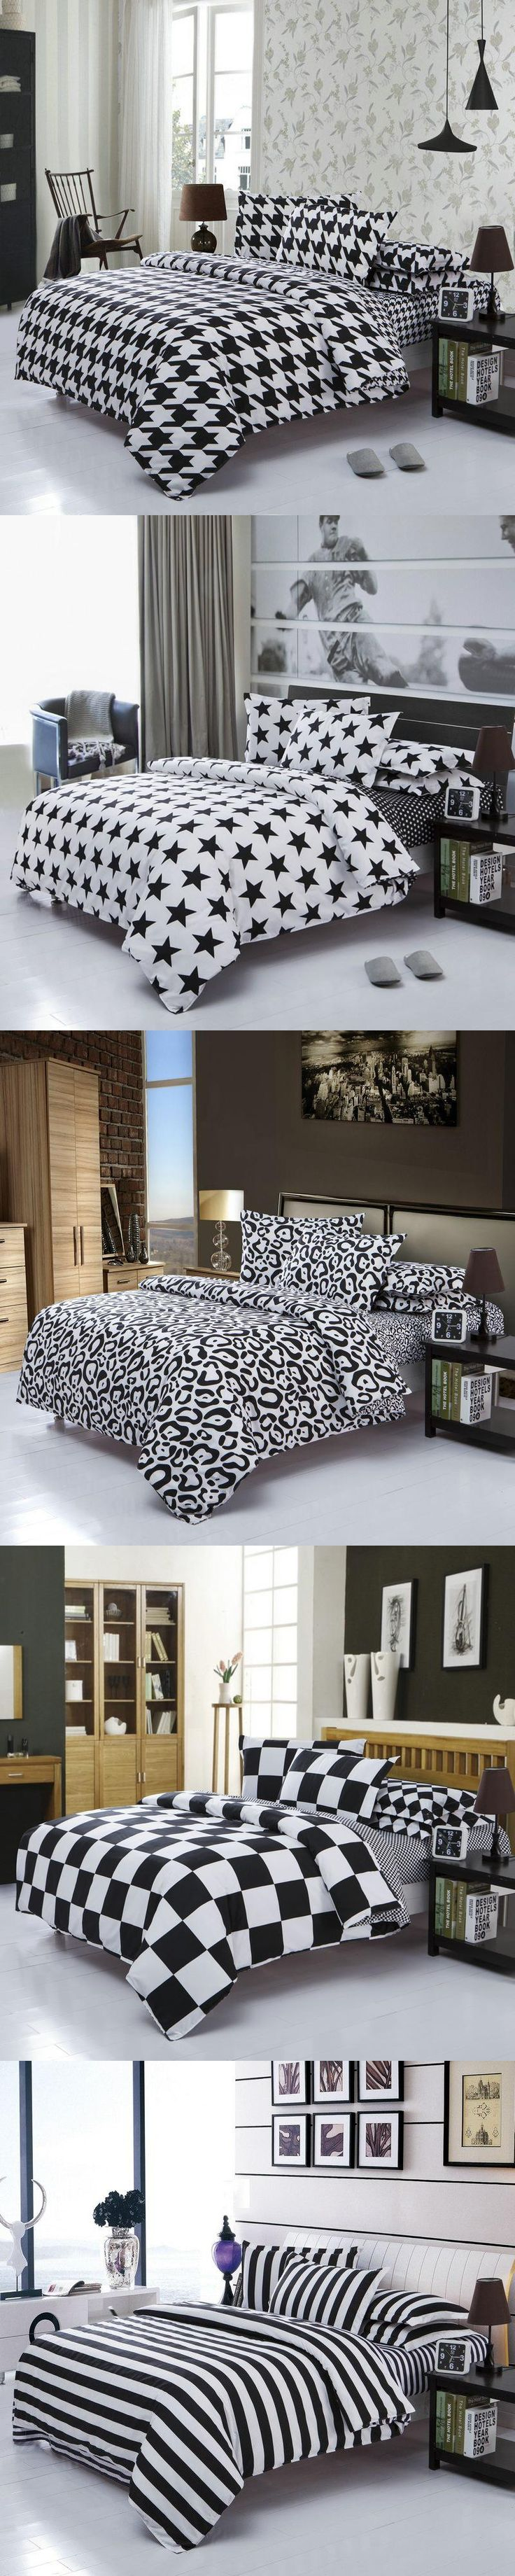 classical black and white cotton bedding set home textile bed linen duvet cover bedclothes twin